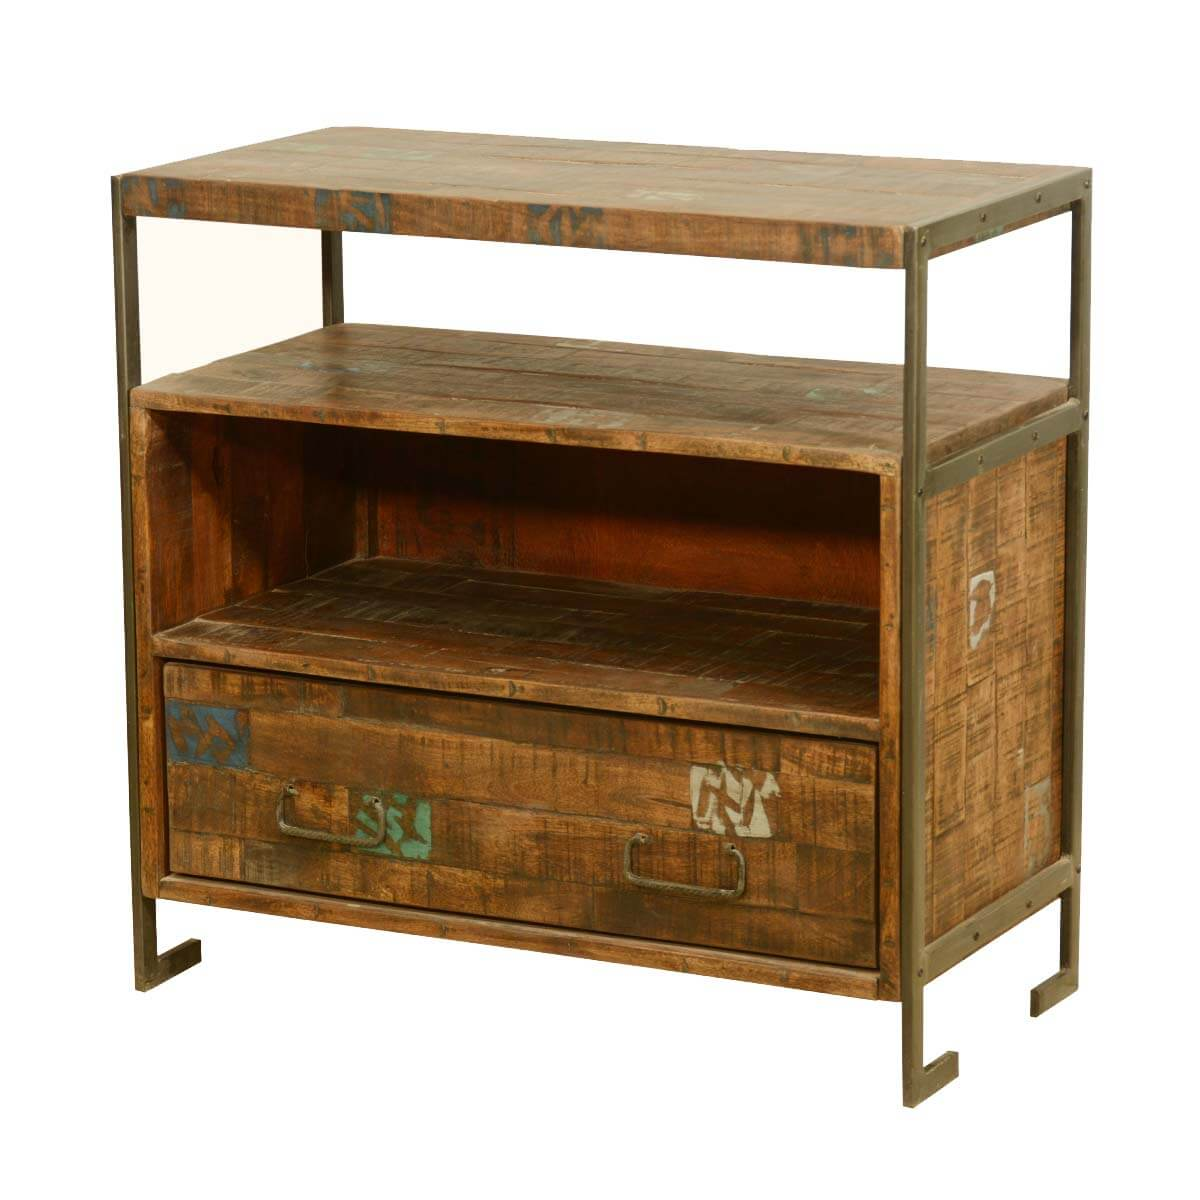 Drakensberg reclaimed wood iron rustic media console tv Rustic tv stands